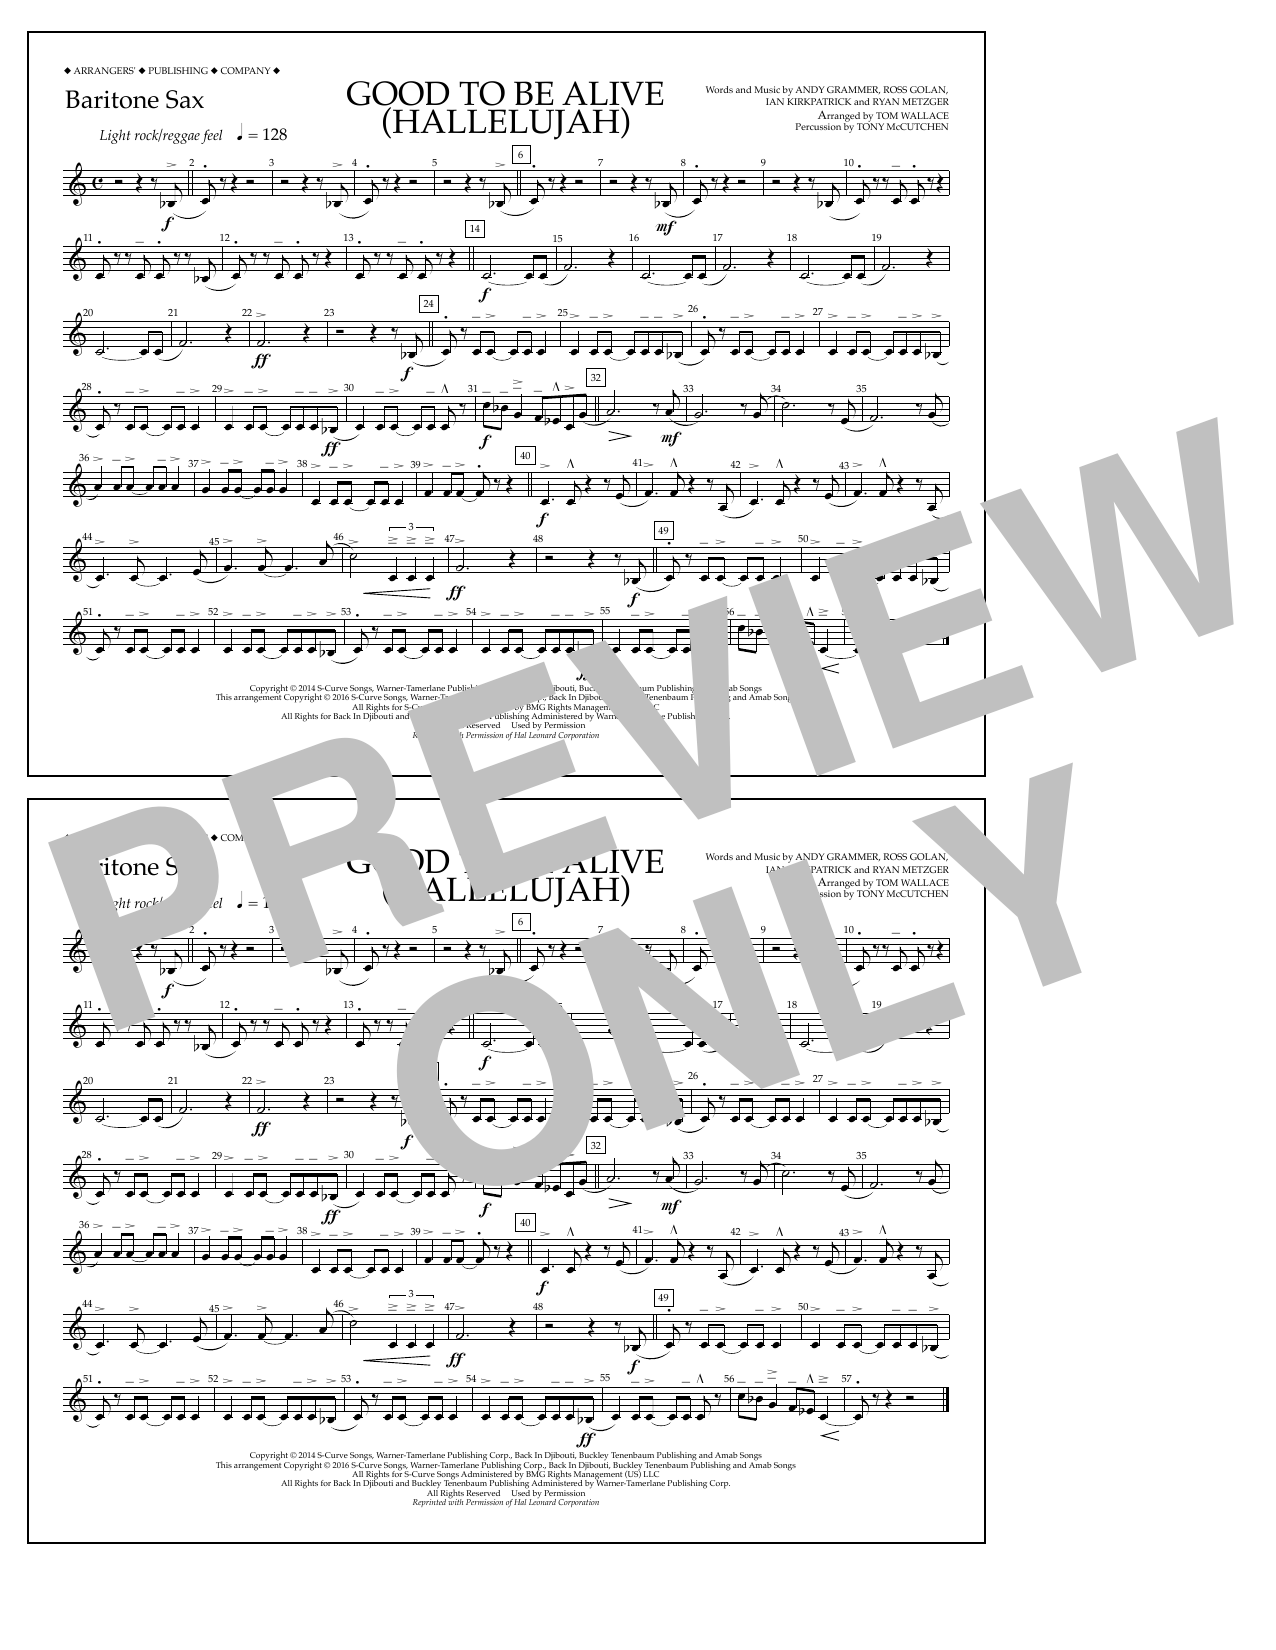 Good to Be Alive (Hallelujah) - Baritone Sax Sheet Music